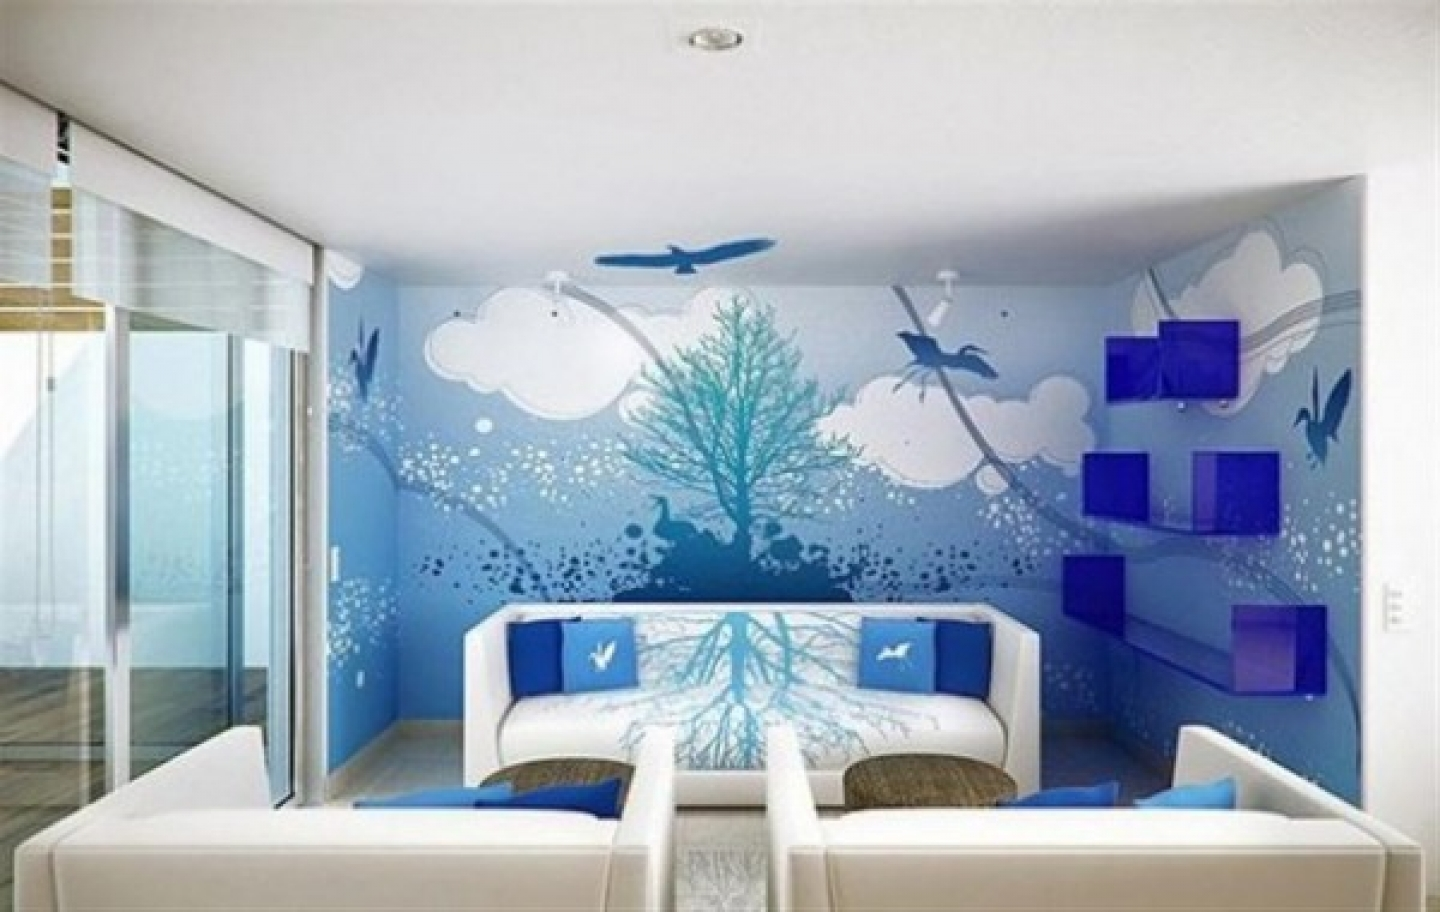 interior wall paint design ideas photo - 9